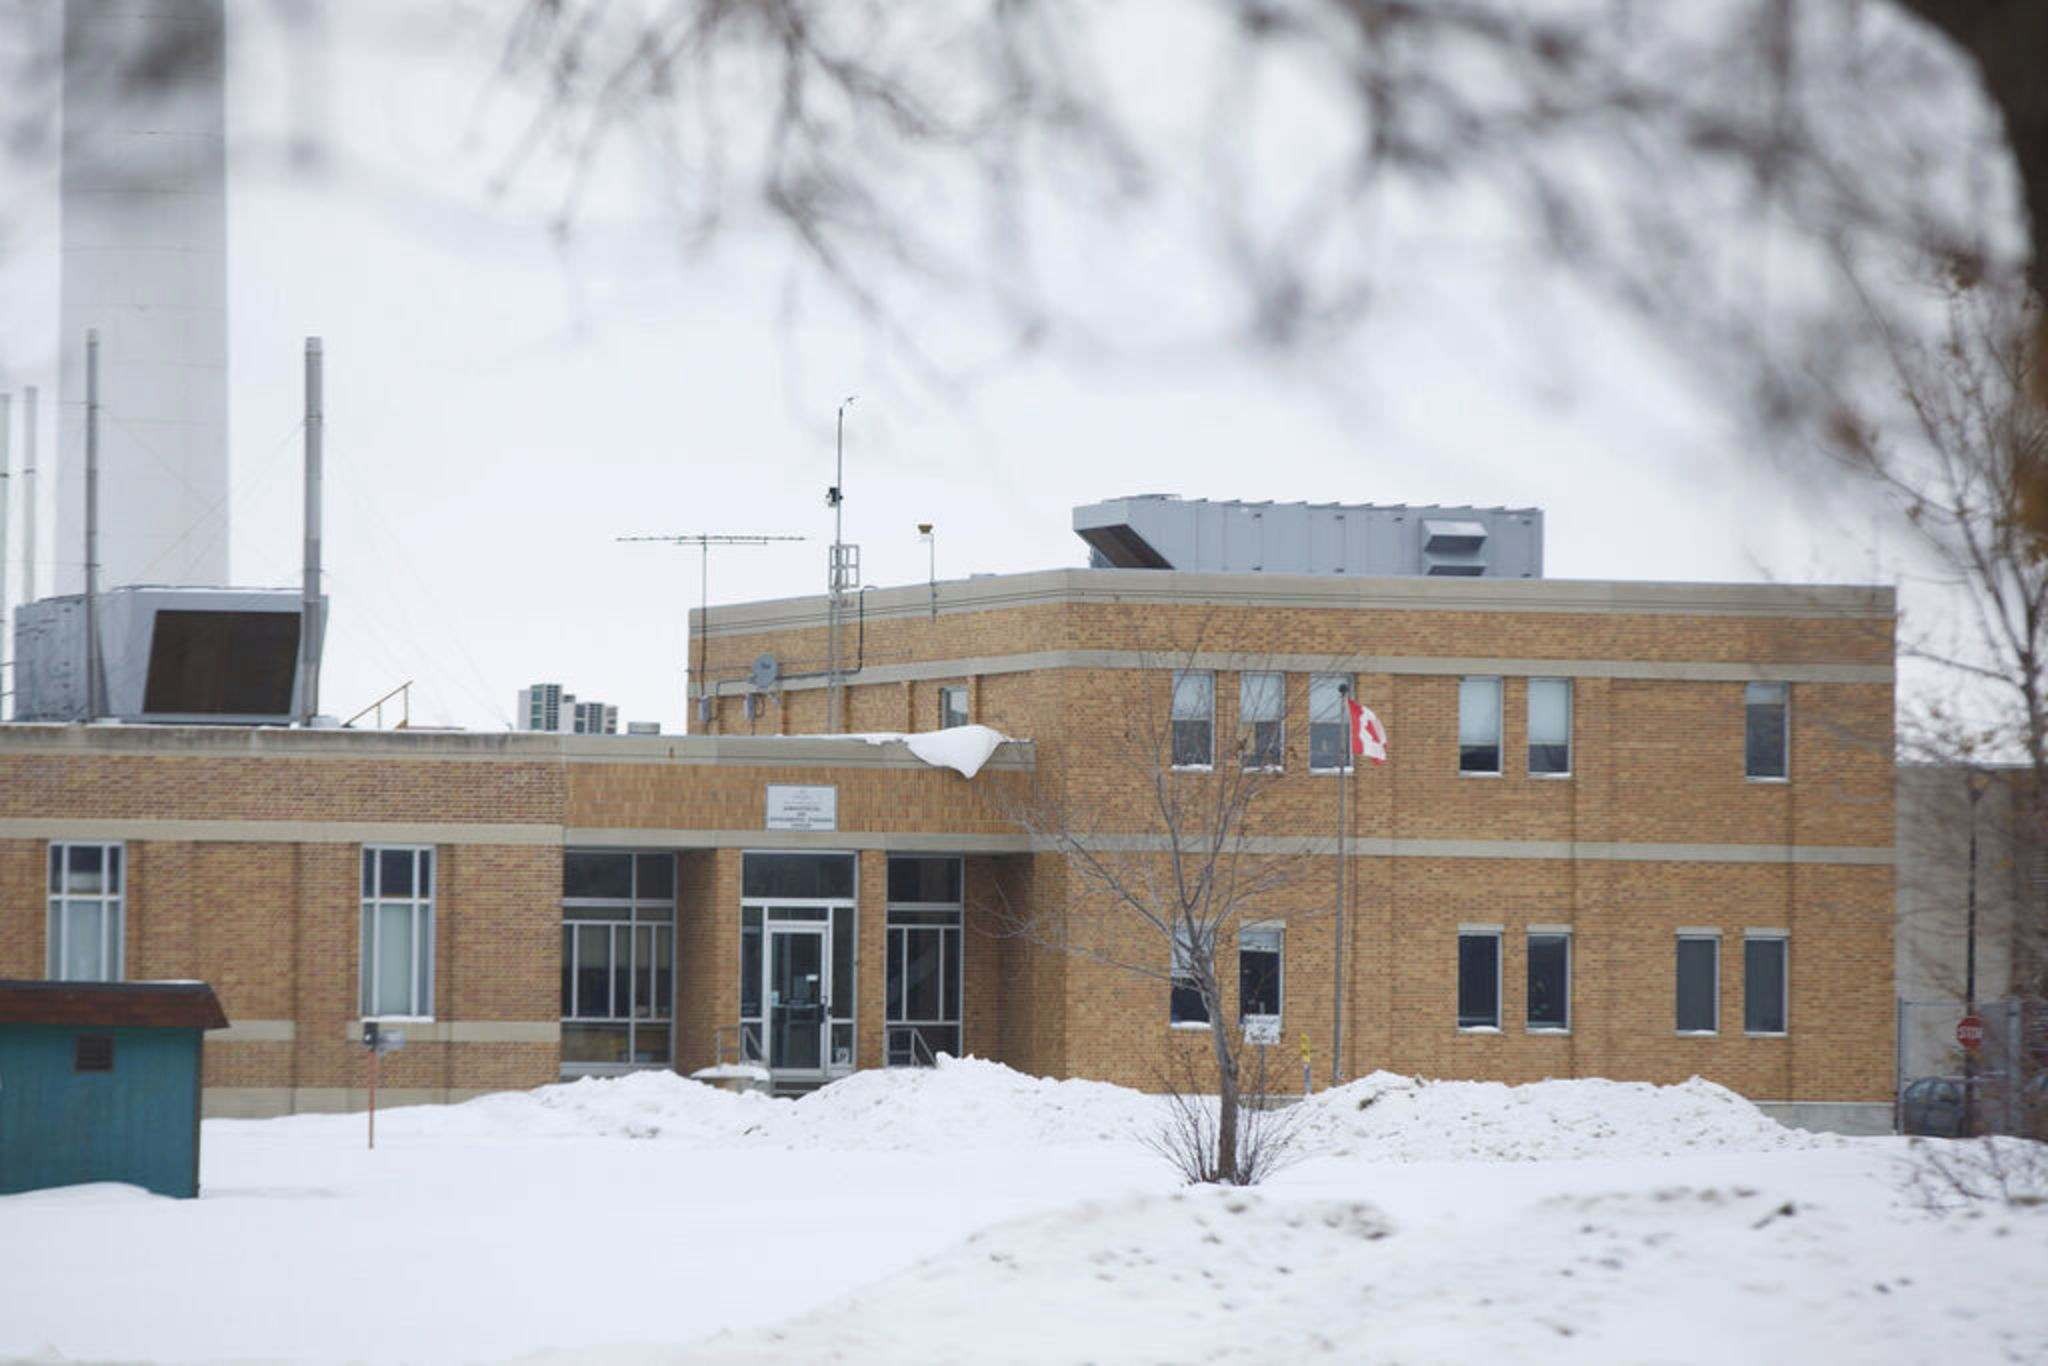 The north end treatment plant upgrade is expected to cost an additional $65 million after bids to design its headworks facilities came in above the asking price. (Mike Deal / Winnipeg Free Press files)</p>